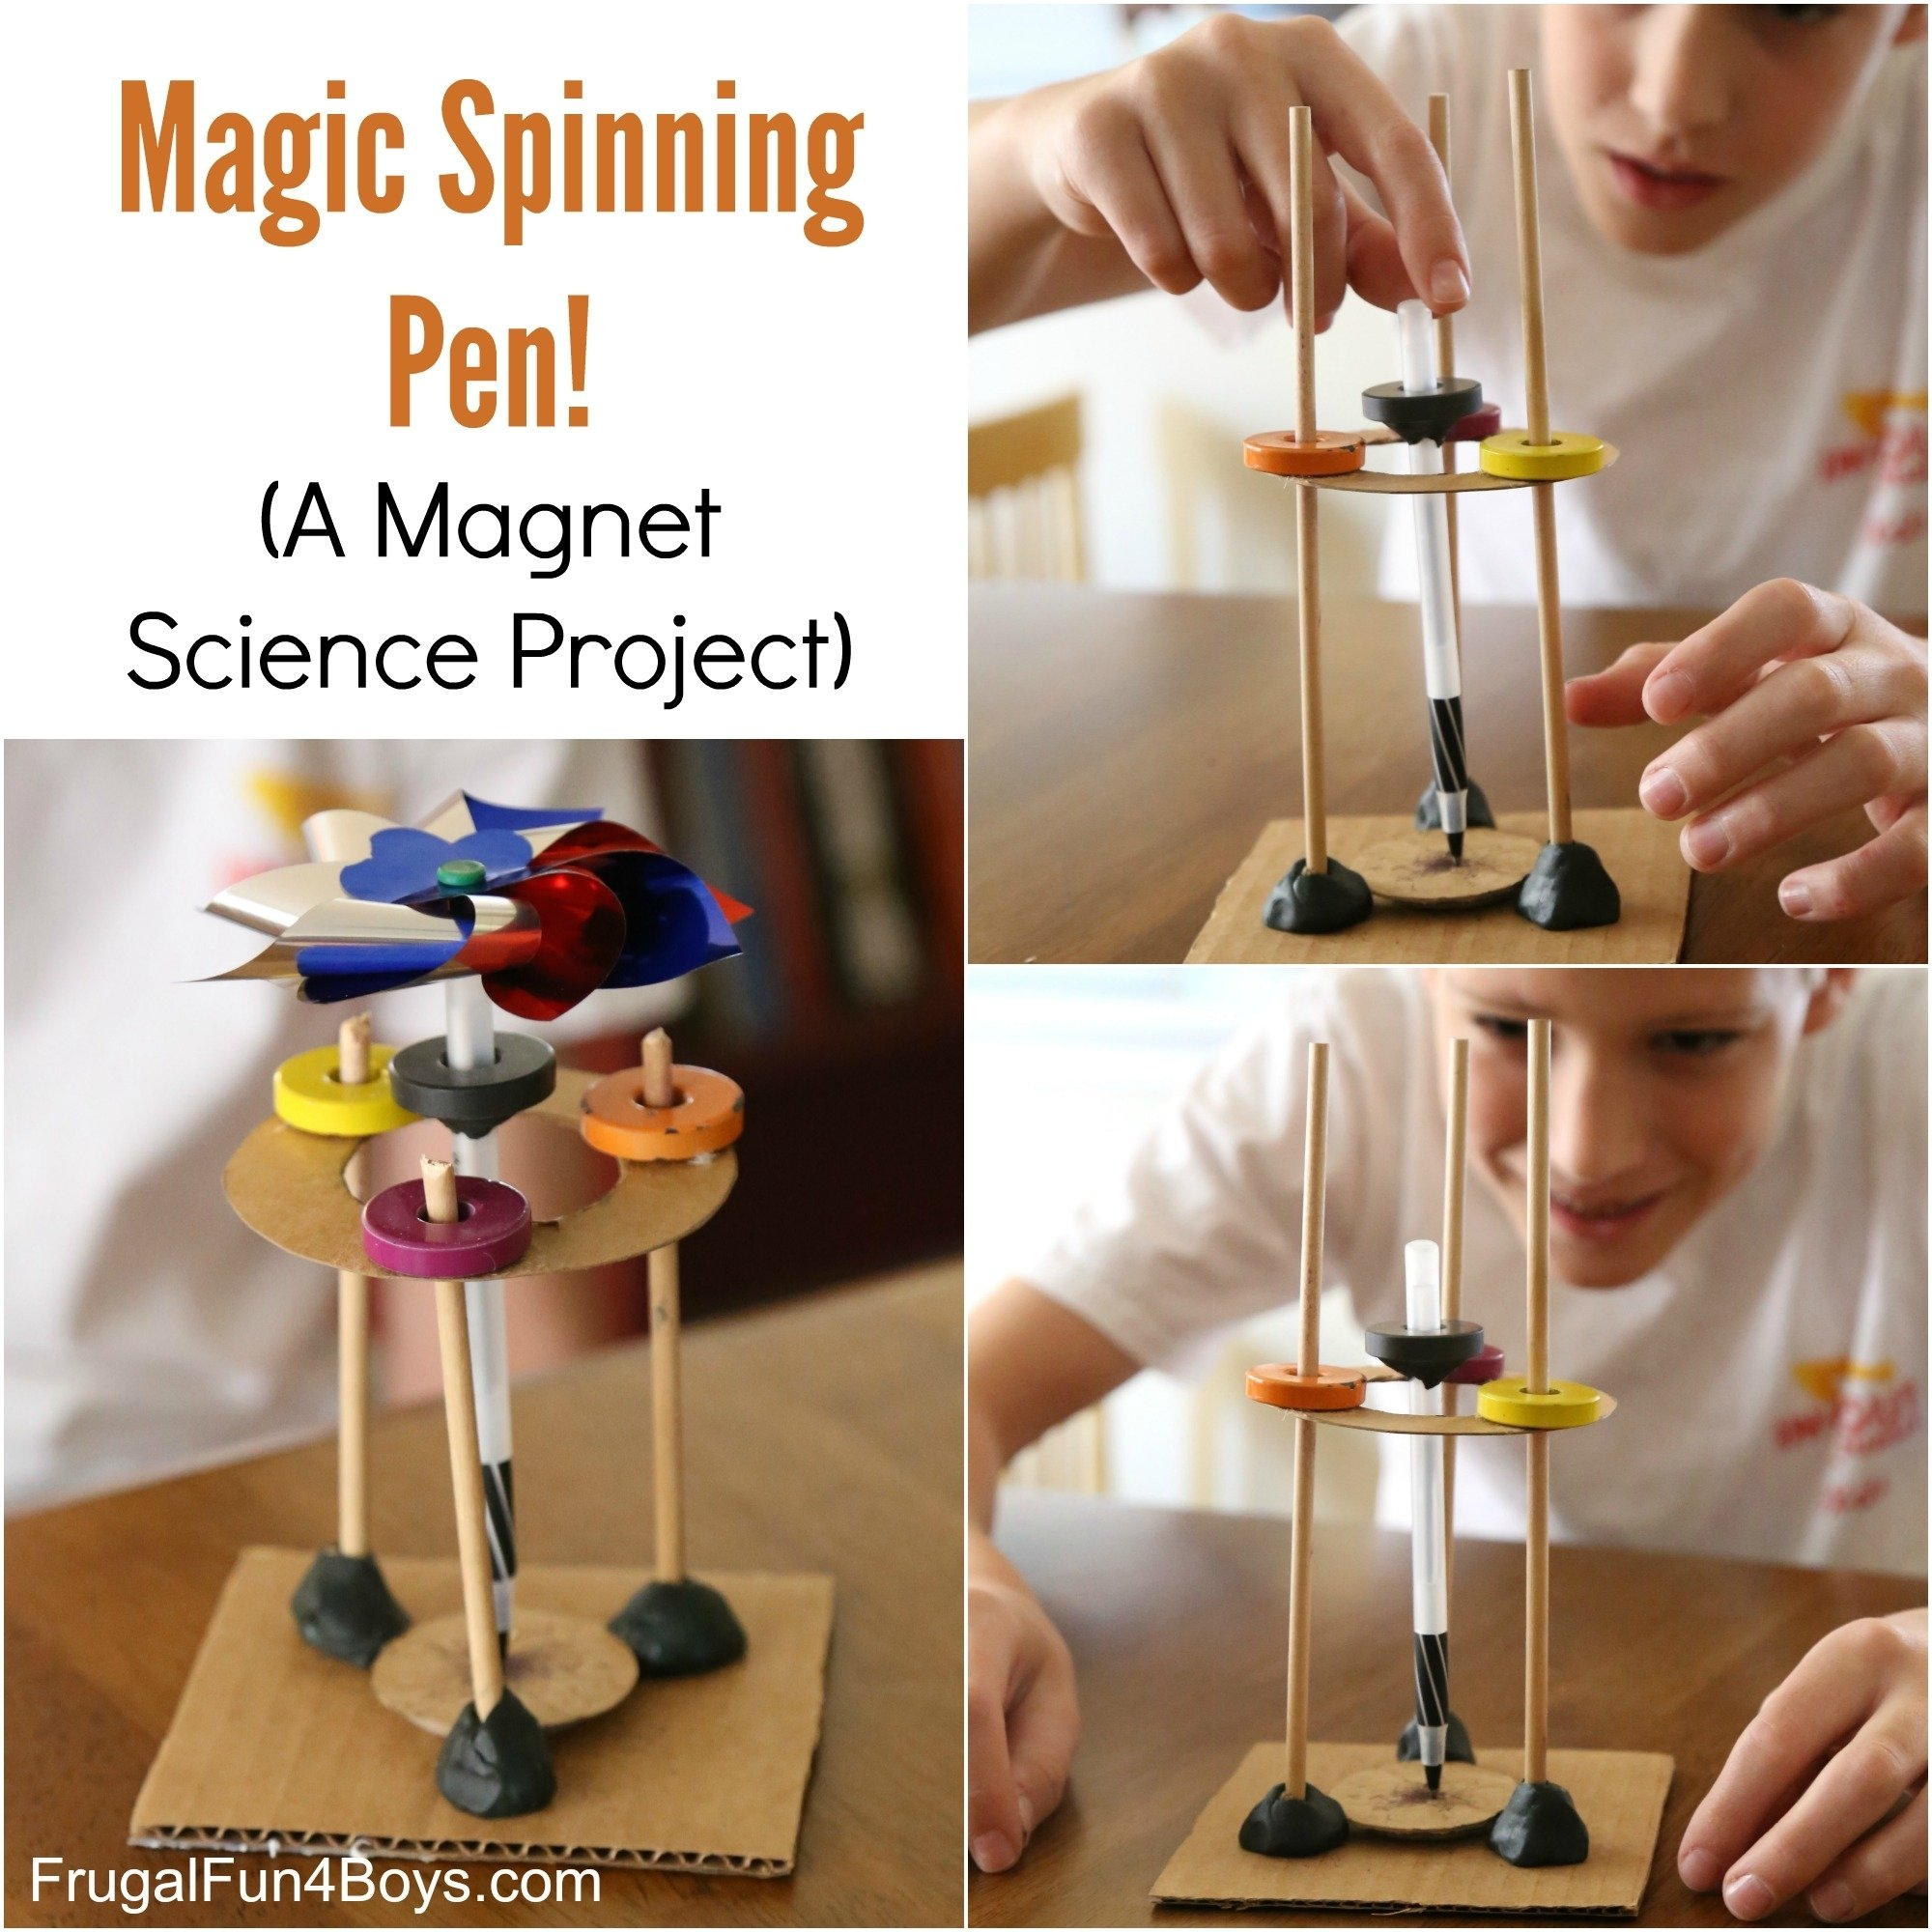 10 Pretty Ideas For Science Projects For Kids magic spinning pen a magnet science experiment for kids 2021